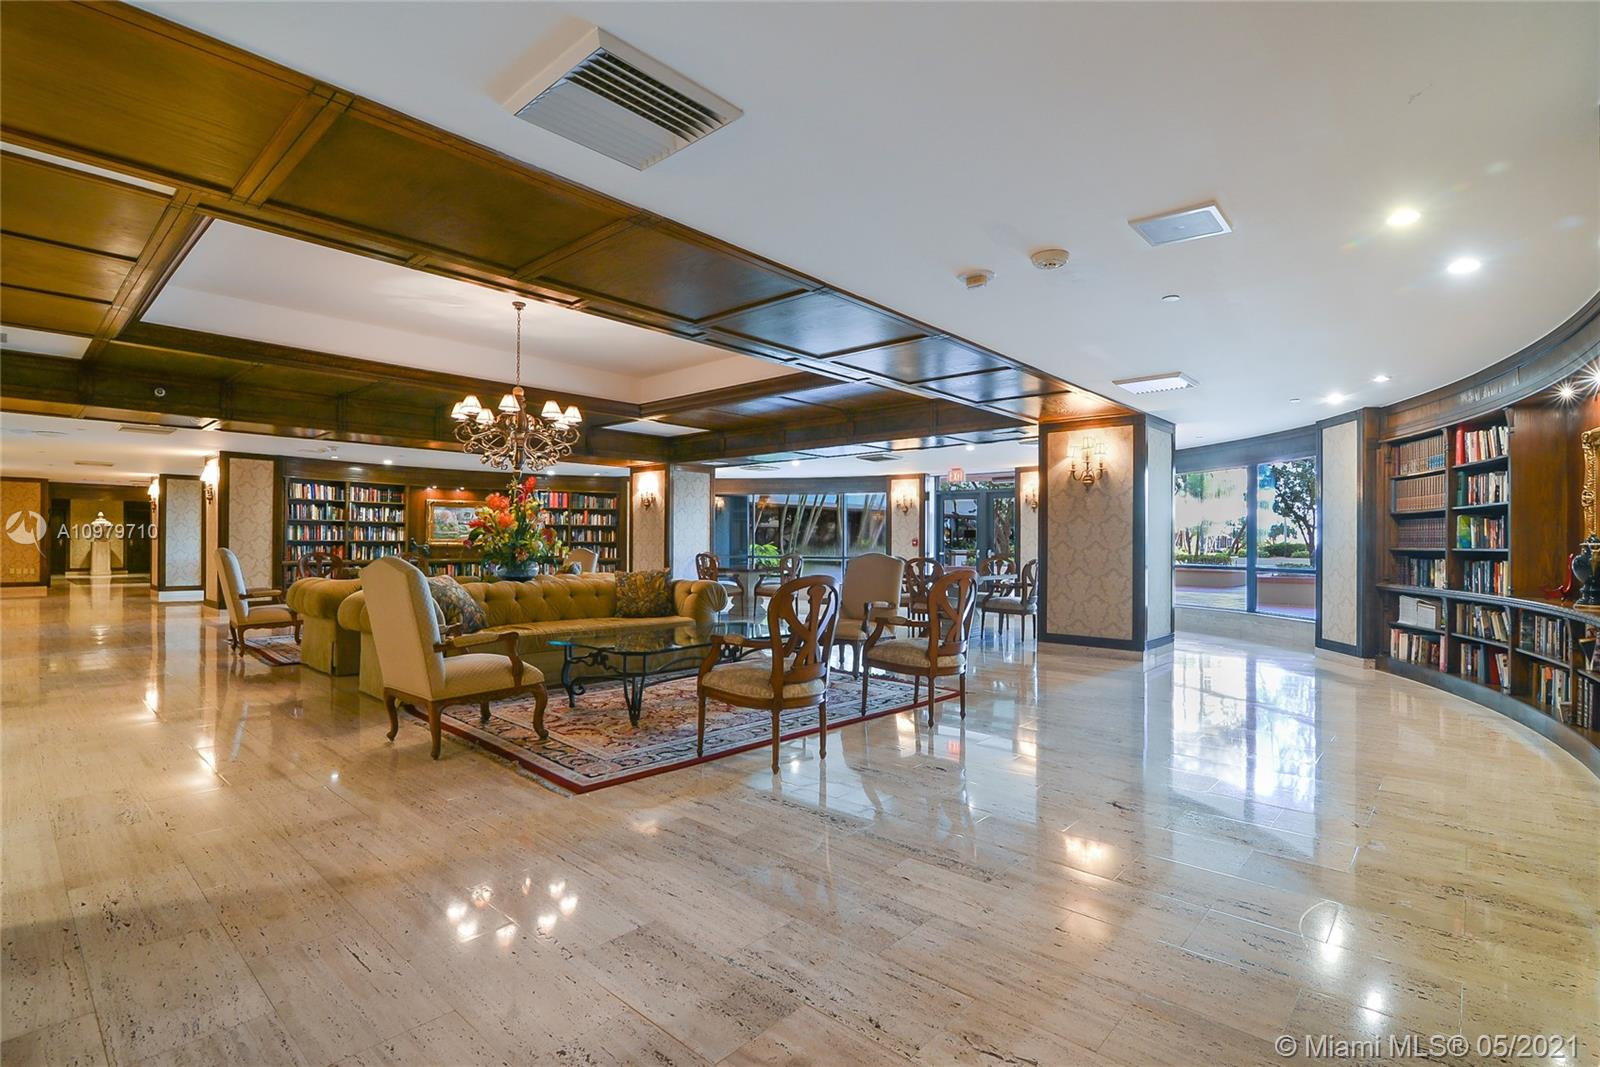 Photo of 9801 Collins Ave #10R, Bal Harbour, Florida, 33154 - Restaurant inside at 3 Th. floor  pool area